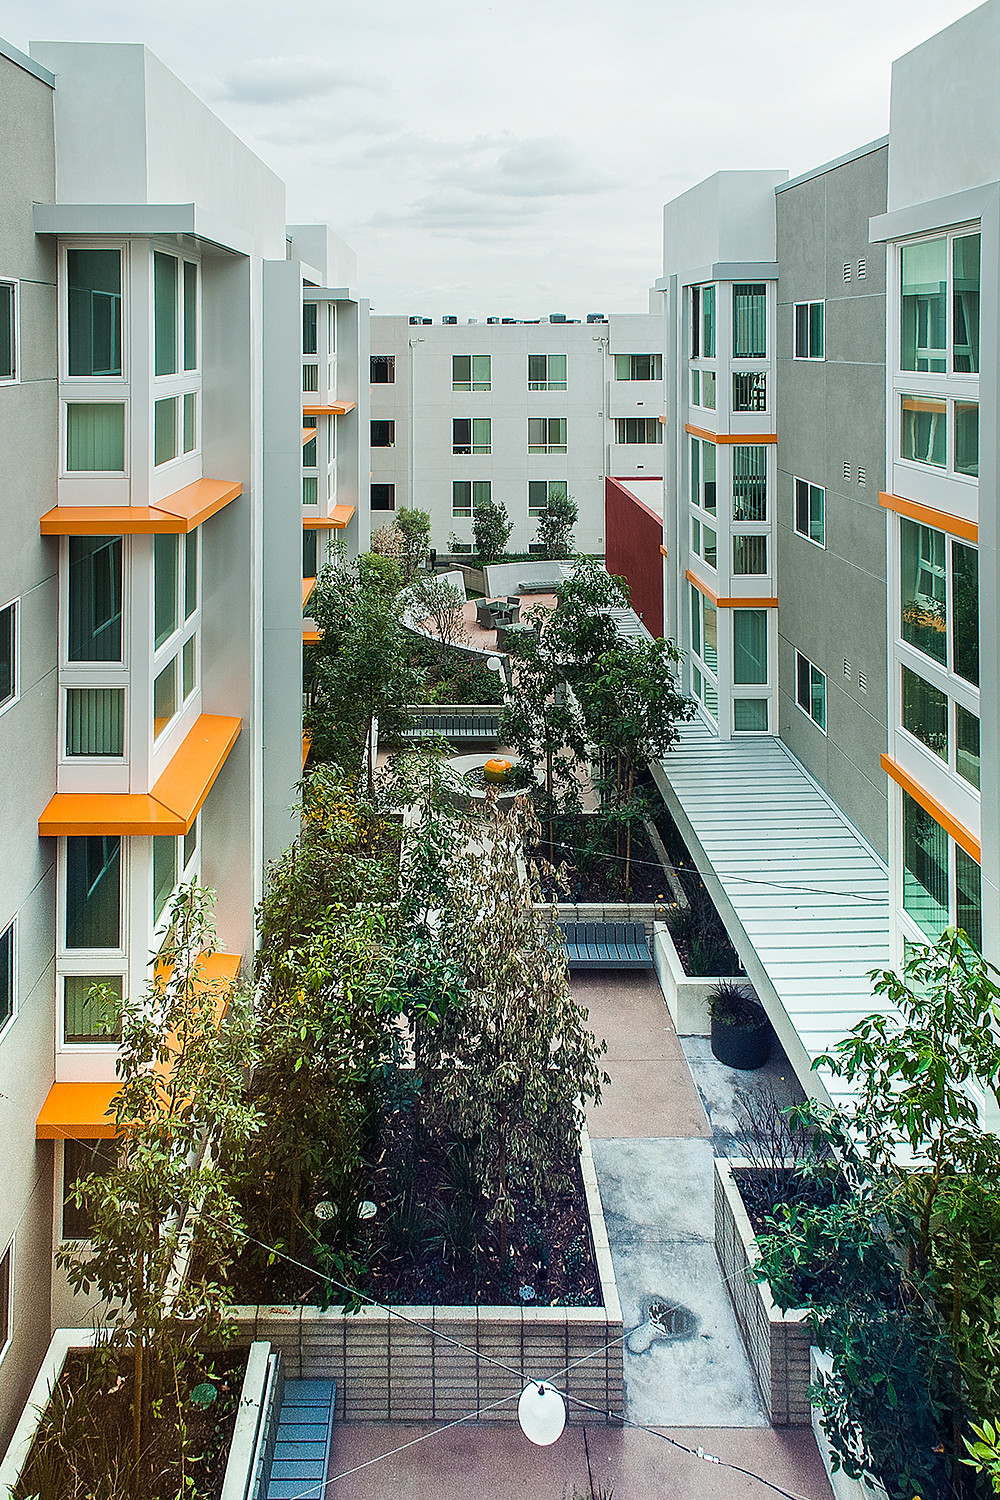 Completed by Zwick Construction in Autumn 2014, the Las Alturas Apartments located in Los Angeles, CA will be reaching its six-year anniversary of completion.